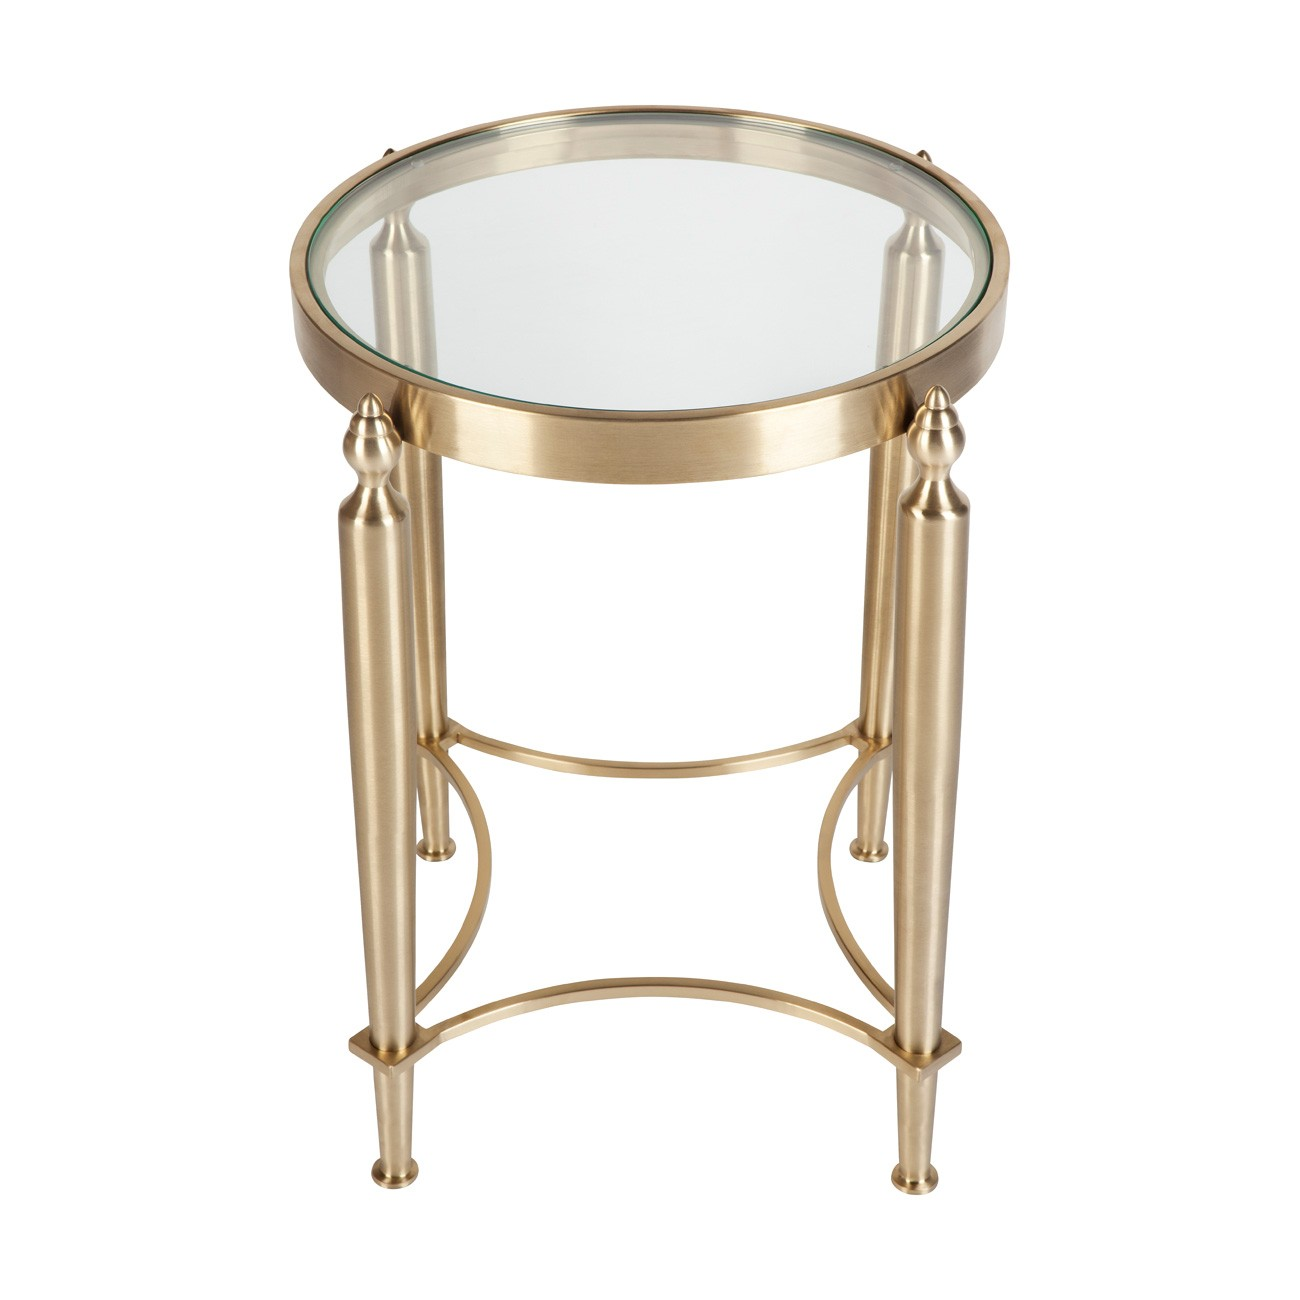 Jacques Glass Top Stainless Steel Round Side Table, Gold